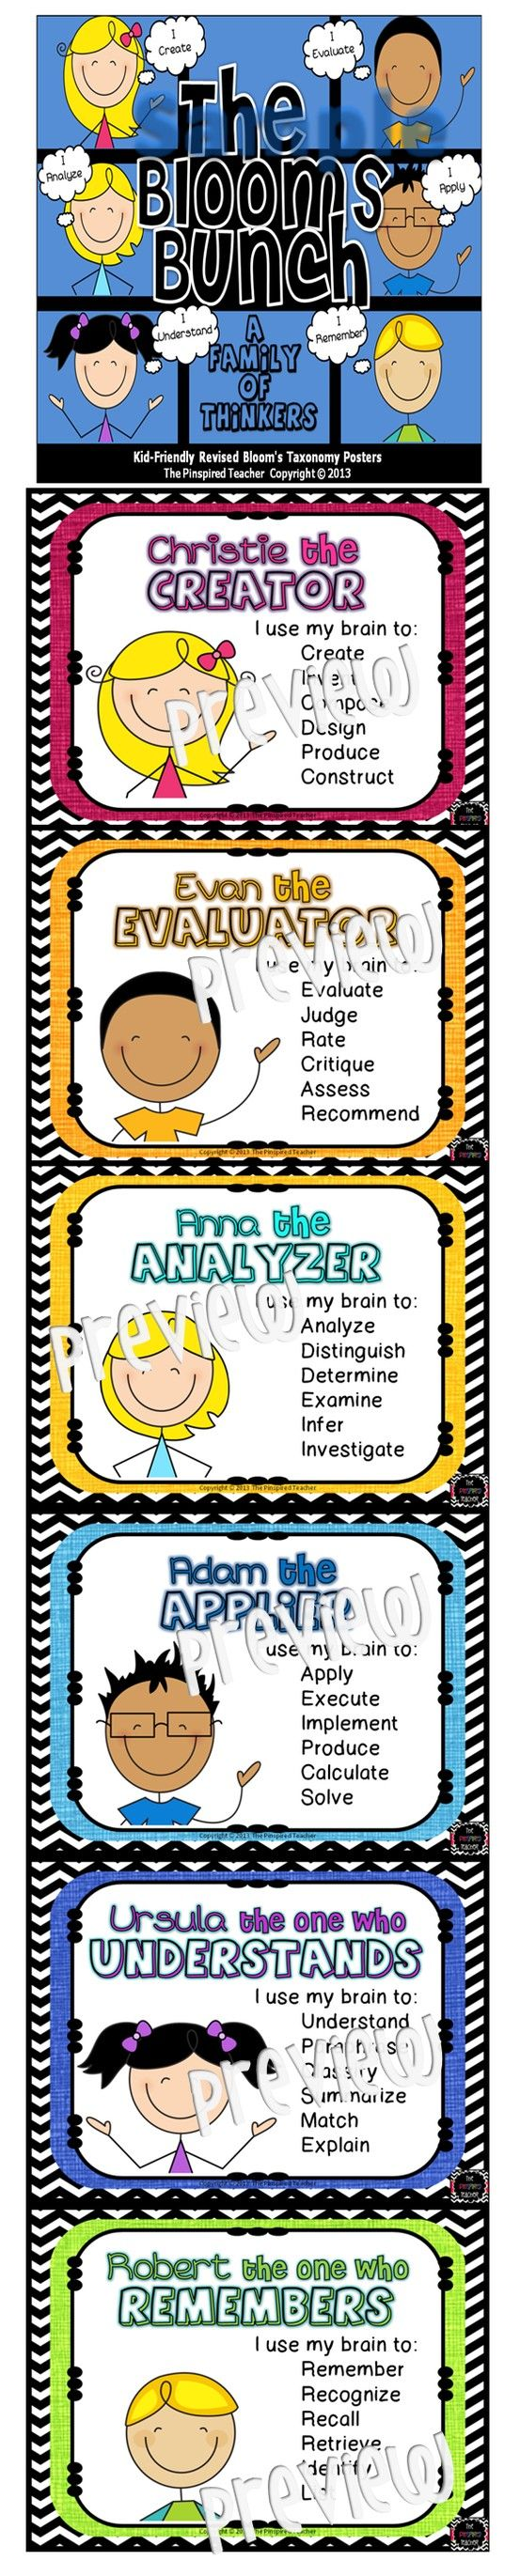 Get your students' minds to bloom into higher-order thinking with The Blooms Bunch: Kid-Friendly Revised Bloom's Taxonomy Posters. Introduce your students to a character for each higher-order thinking level:  The Big Sibs: (Higher-Order Thinking Levels) Create: Christie the Creator Evaluate: Evan the Evaluator  Analyze: Anna the Analyzer   The Lil' Sibs: (Lower-Order Thinking Levels) Apply: Adam the Applier Understand: Ursula the one who Understands Remember: Robert the one who Remembers $4